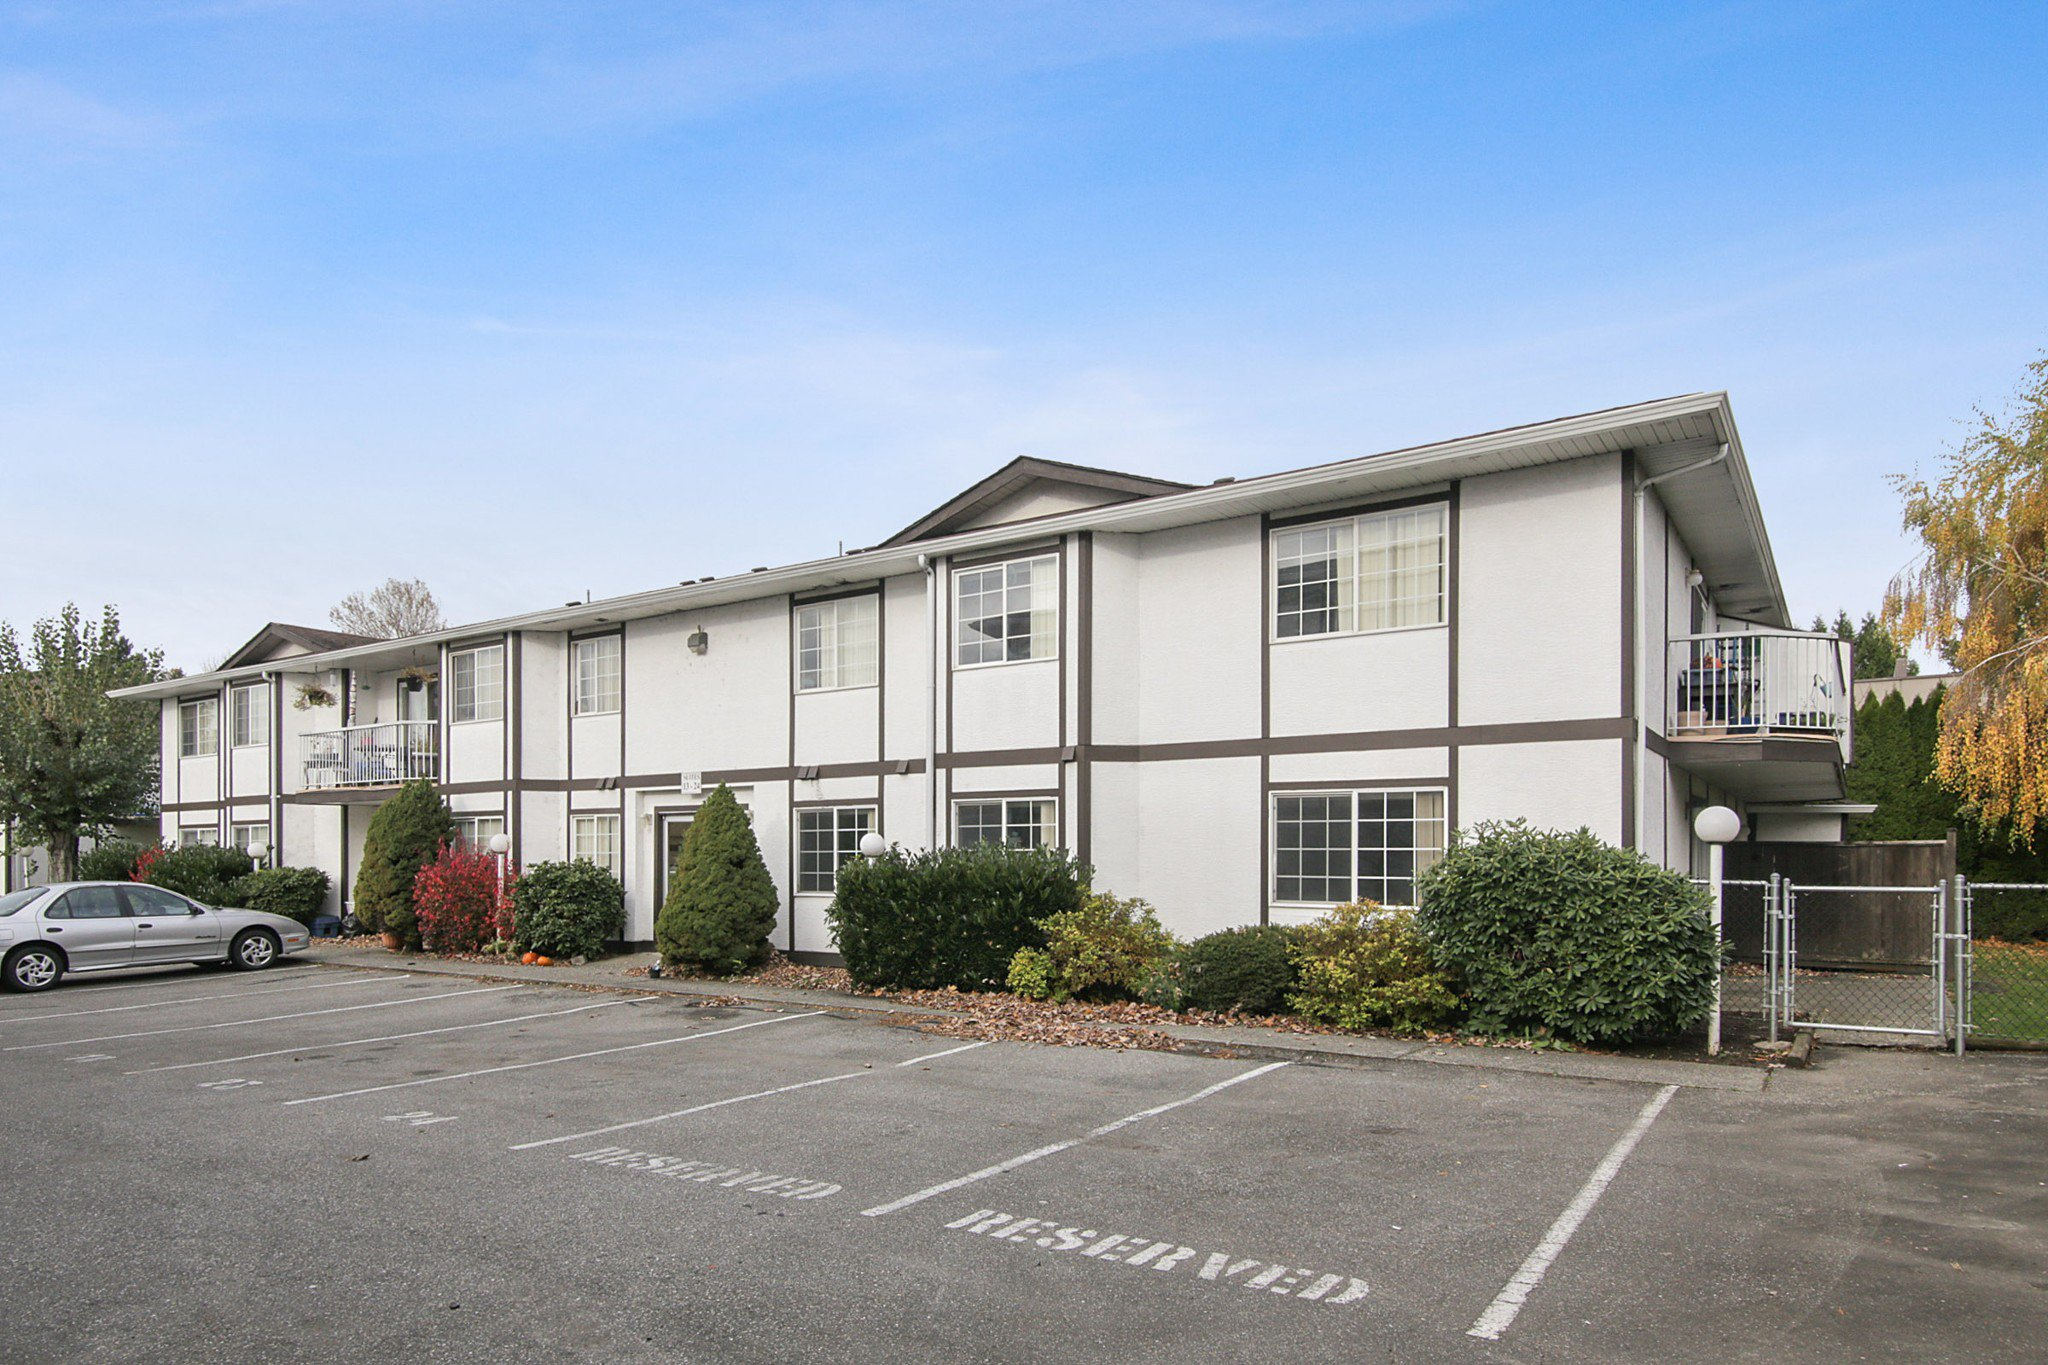 """Main Photo: 105B 45655 MCINTOSH Drive in Chilliwack: Chilliwack W Young-Well Condo for sale in """"McIntosh Place"""" : MLS®# R2515821"""